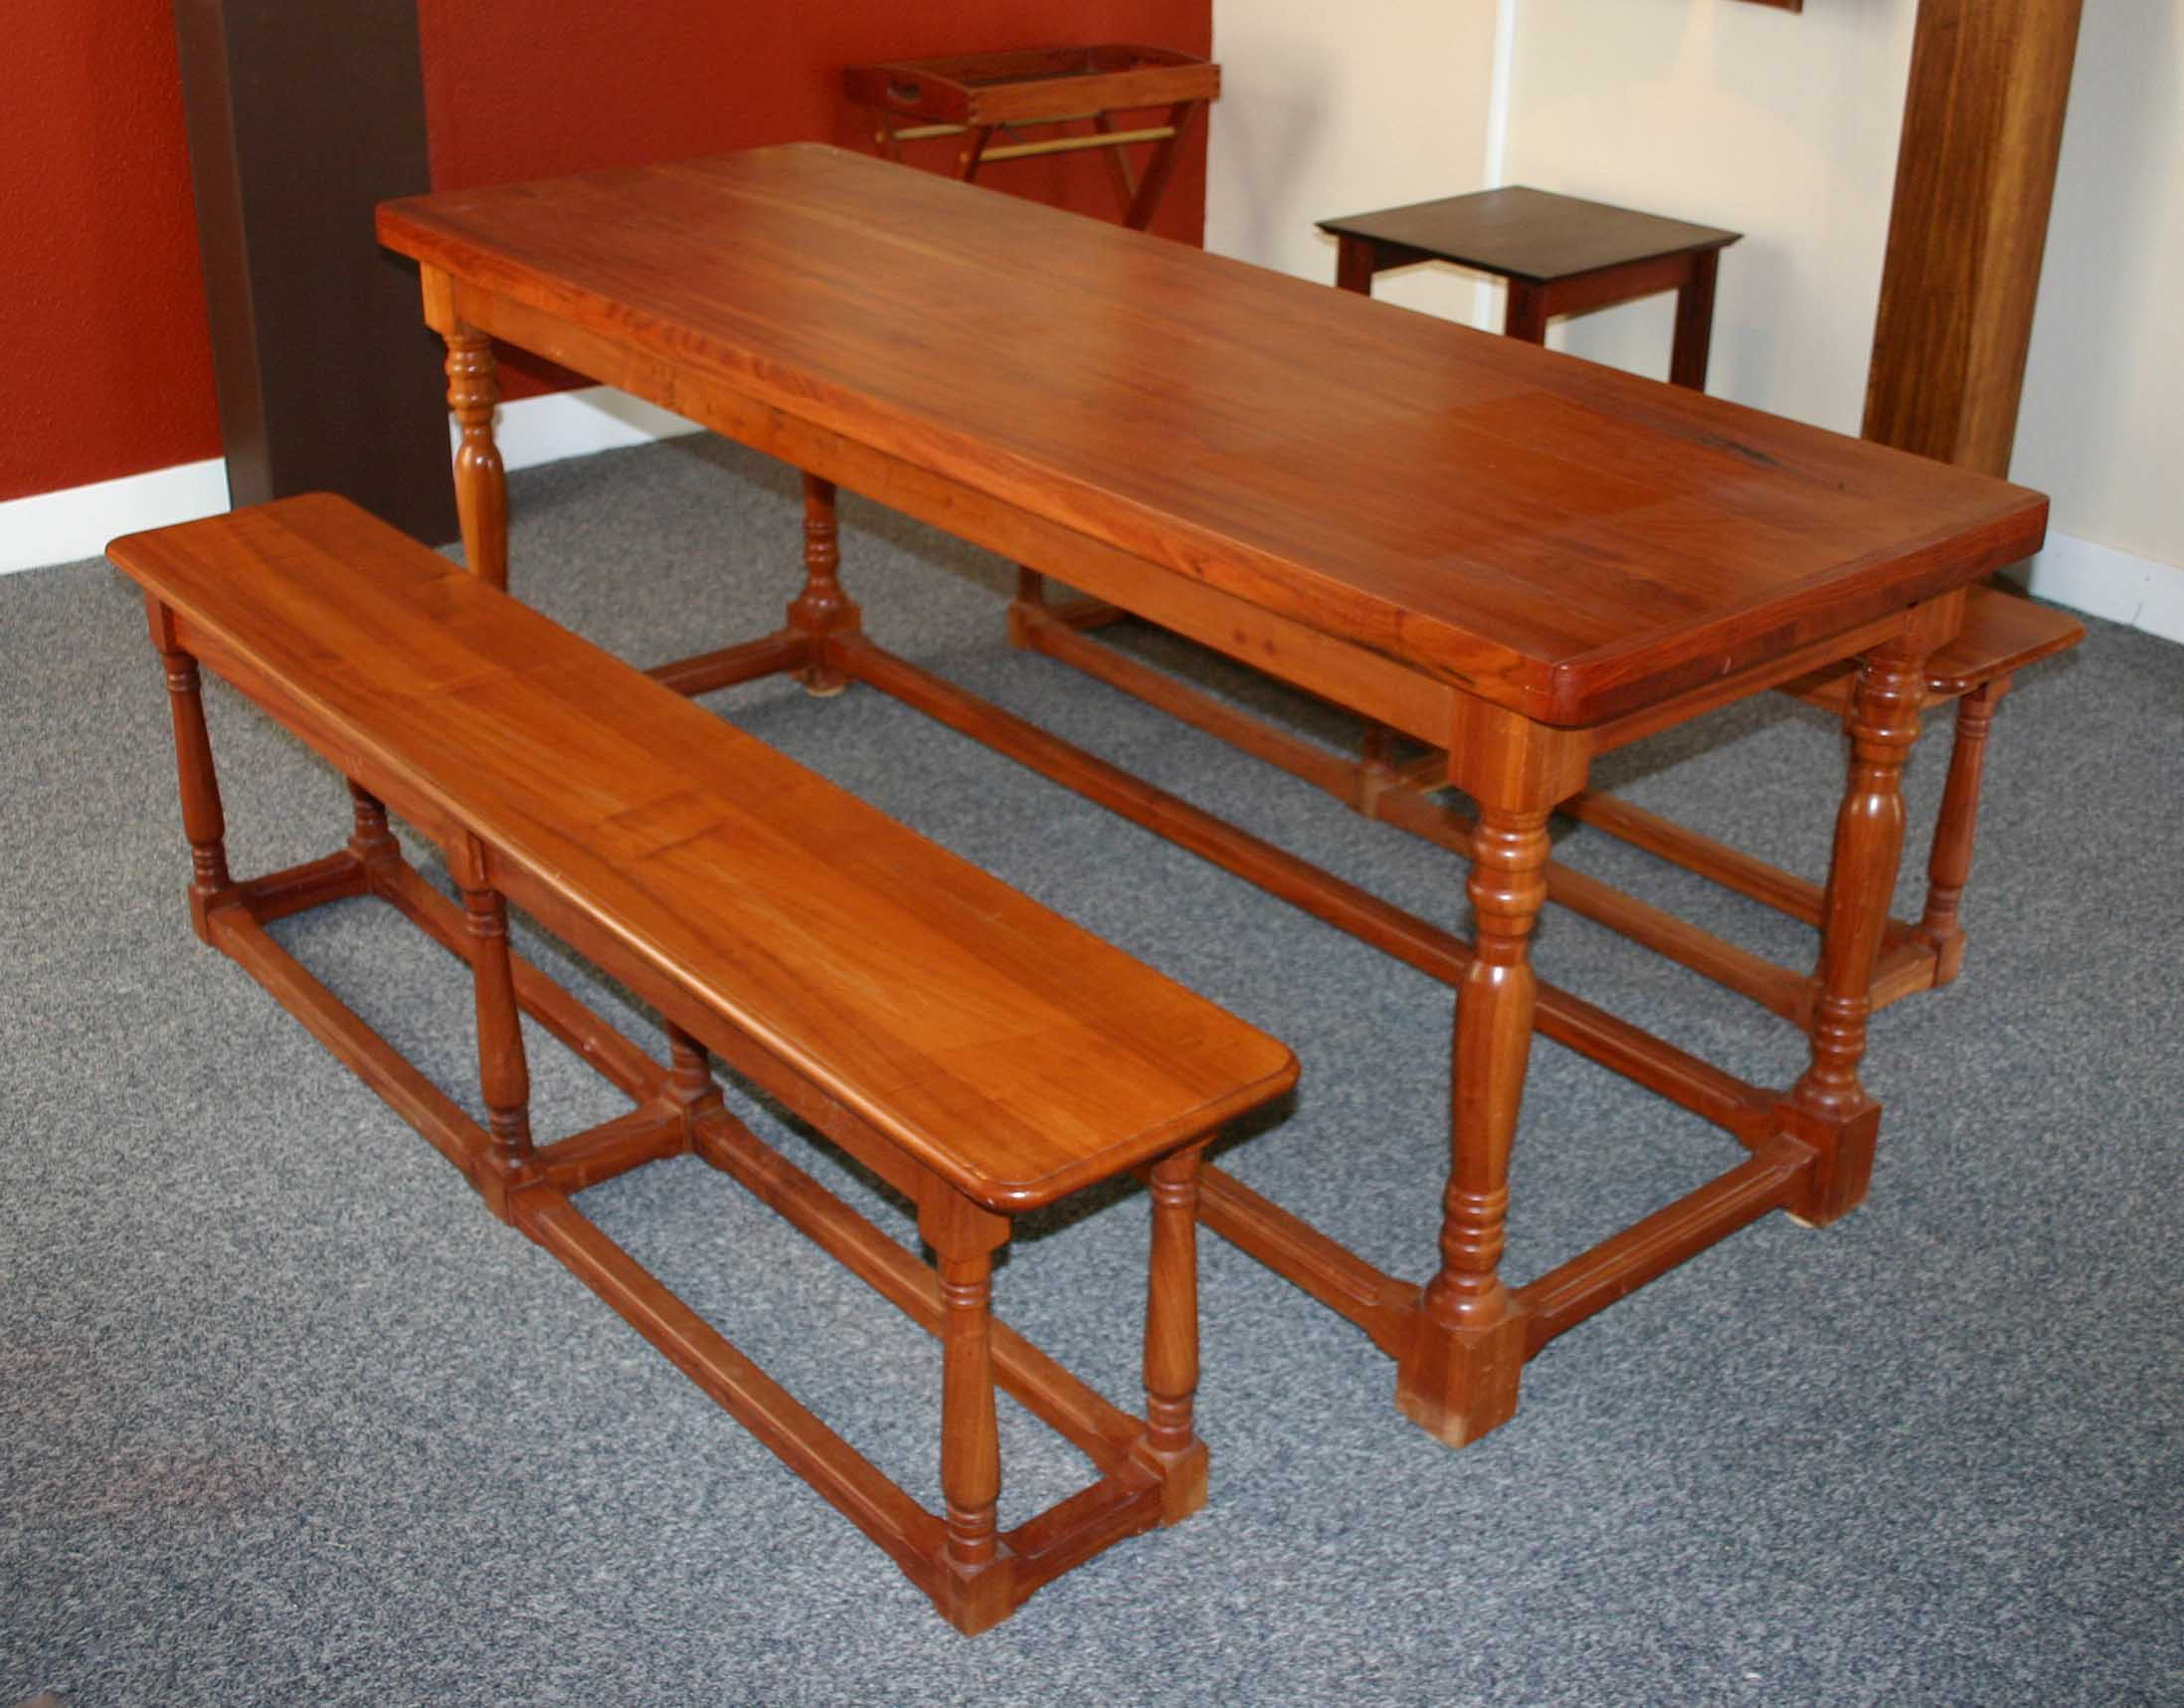 Refectory table, designer Mike Edwards